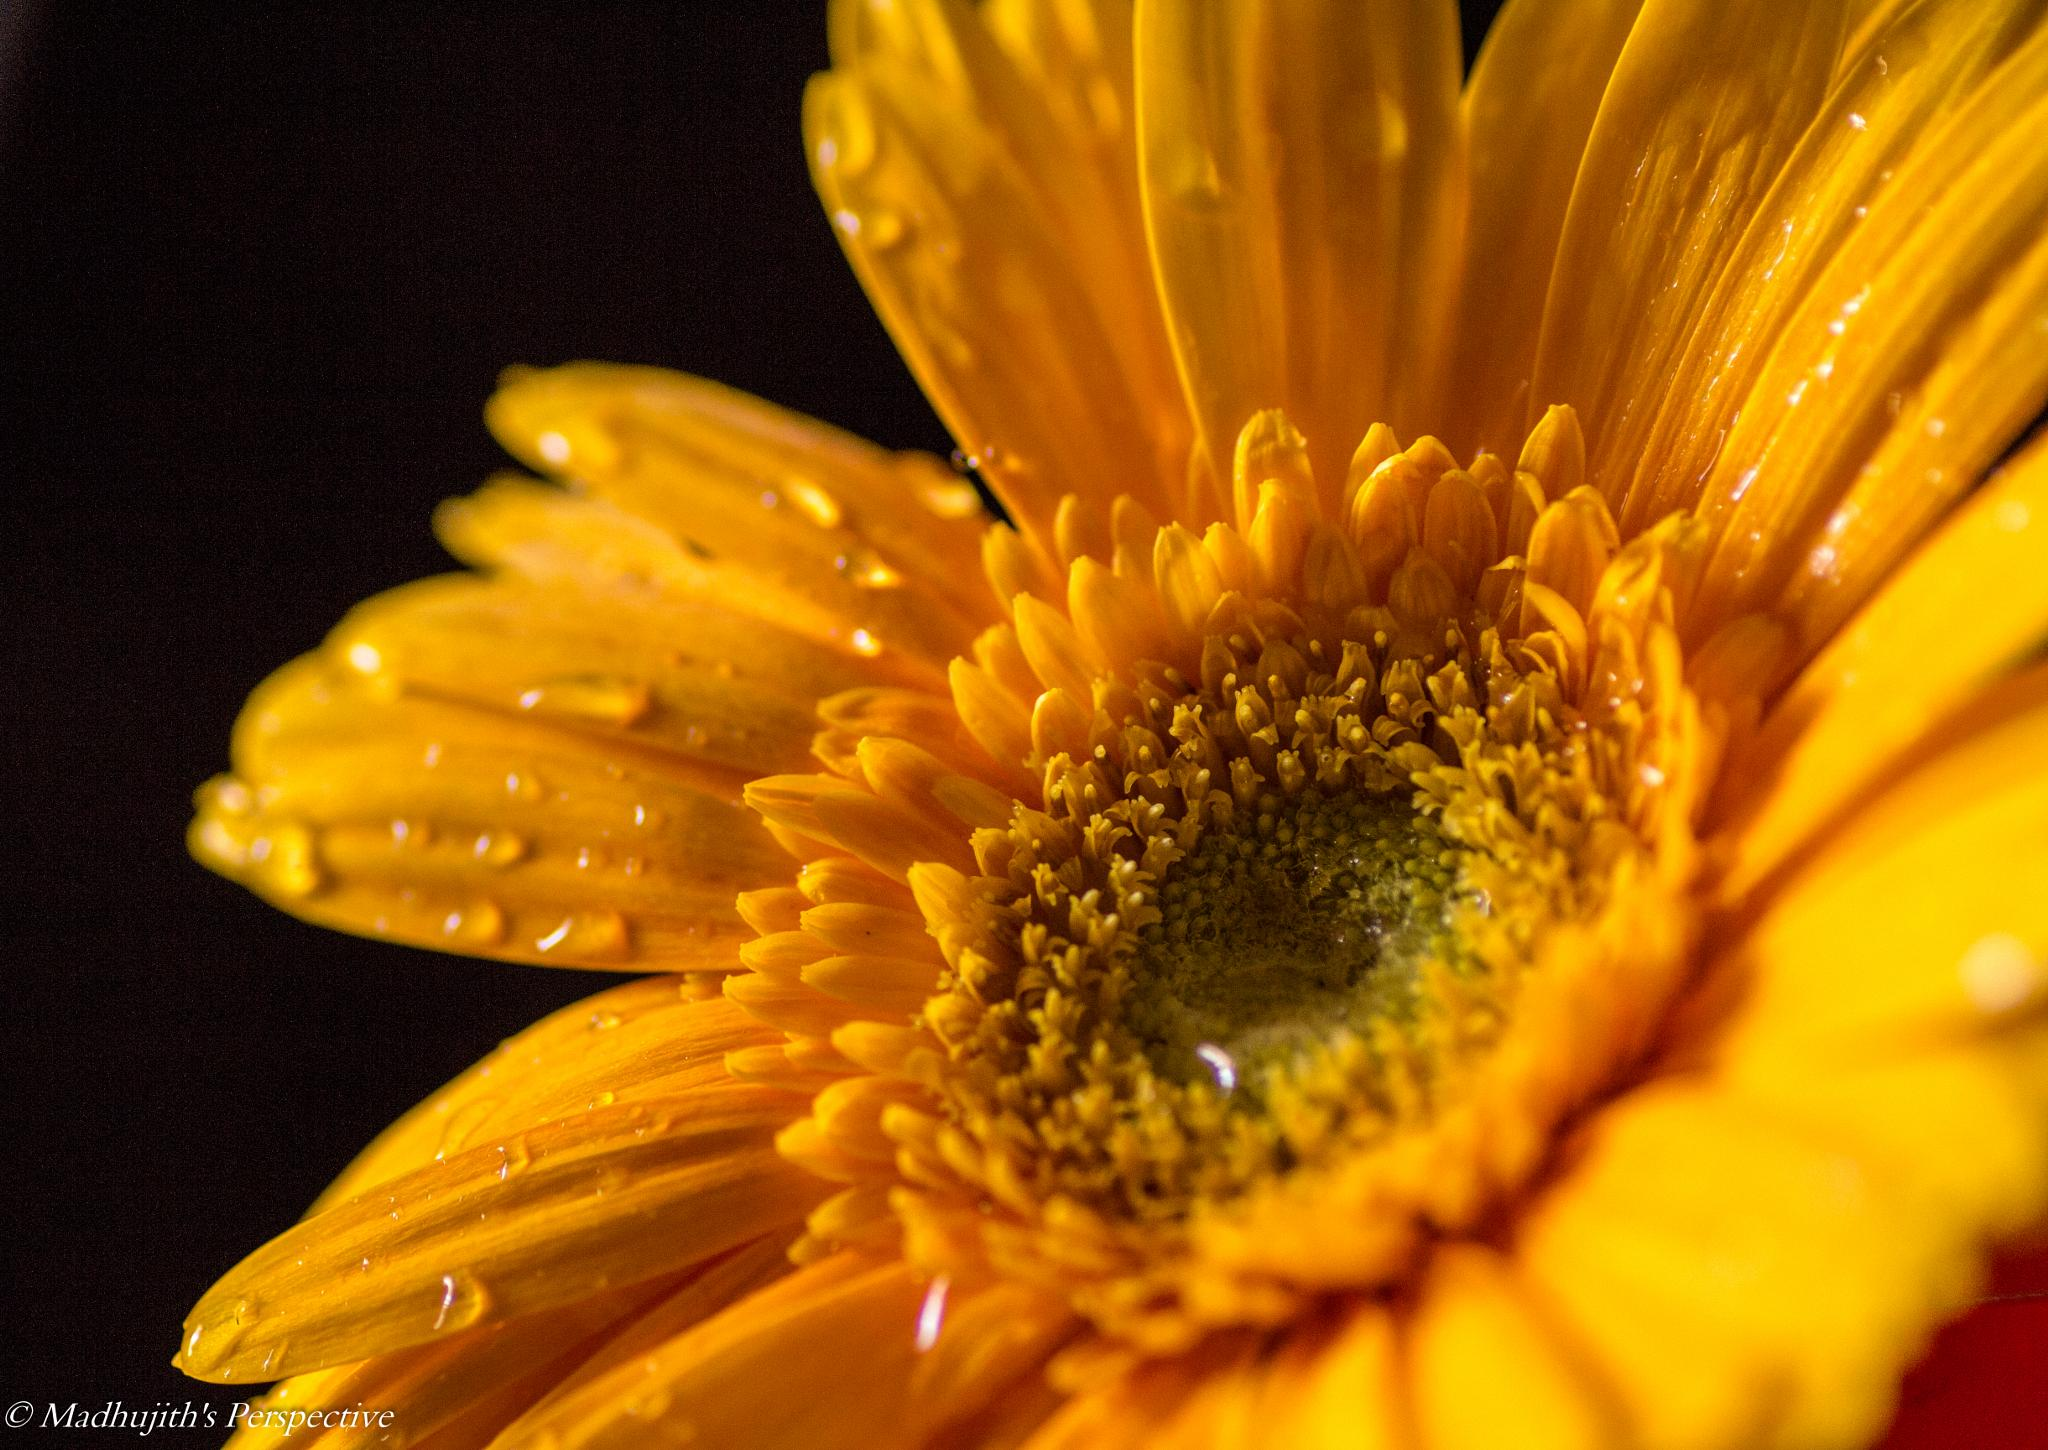 Fresh as a Daisy by madhujith